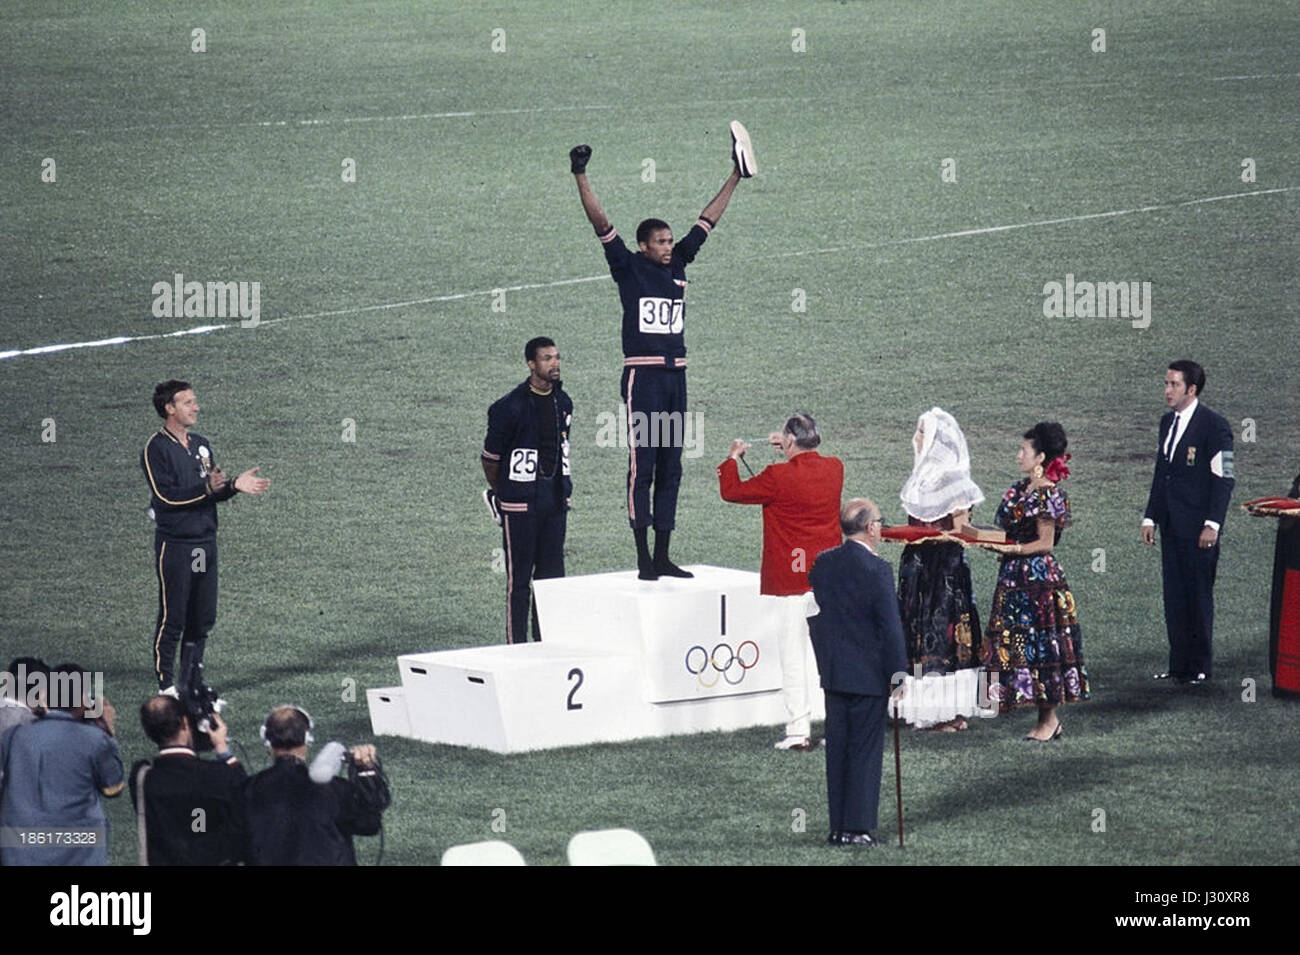 Peter Norman, Juan Carlos, Tommie Smith 1968 Fotografía de stock ...